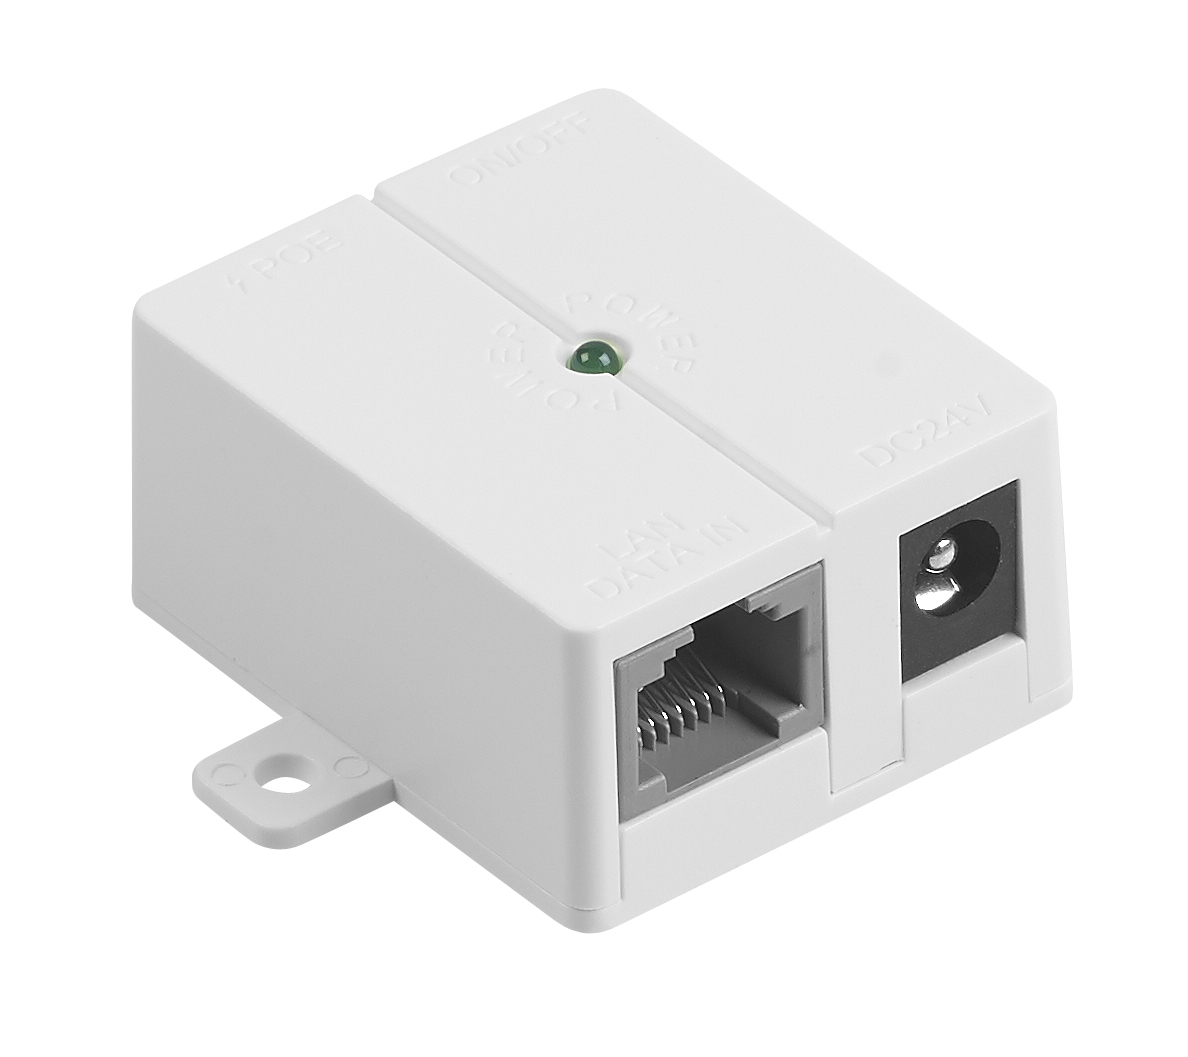 7links Wetterfester Outdoor-WLAN-Repeater WLR-1200 mit 1 ...